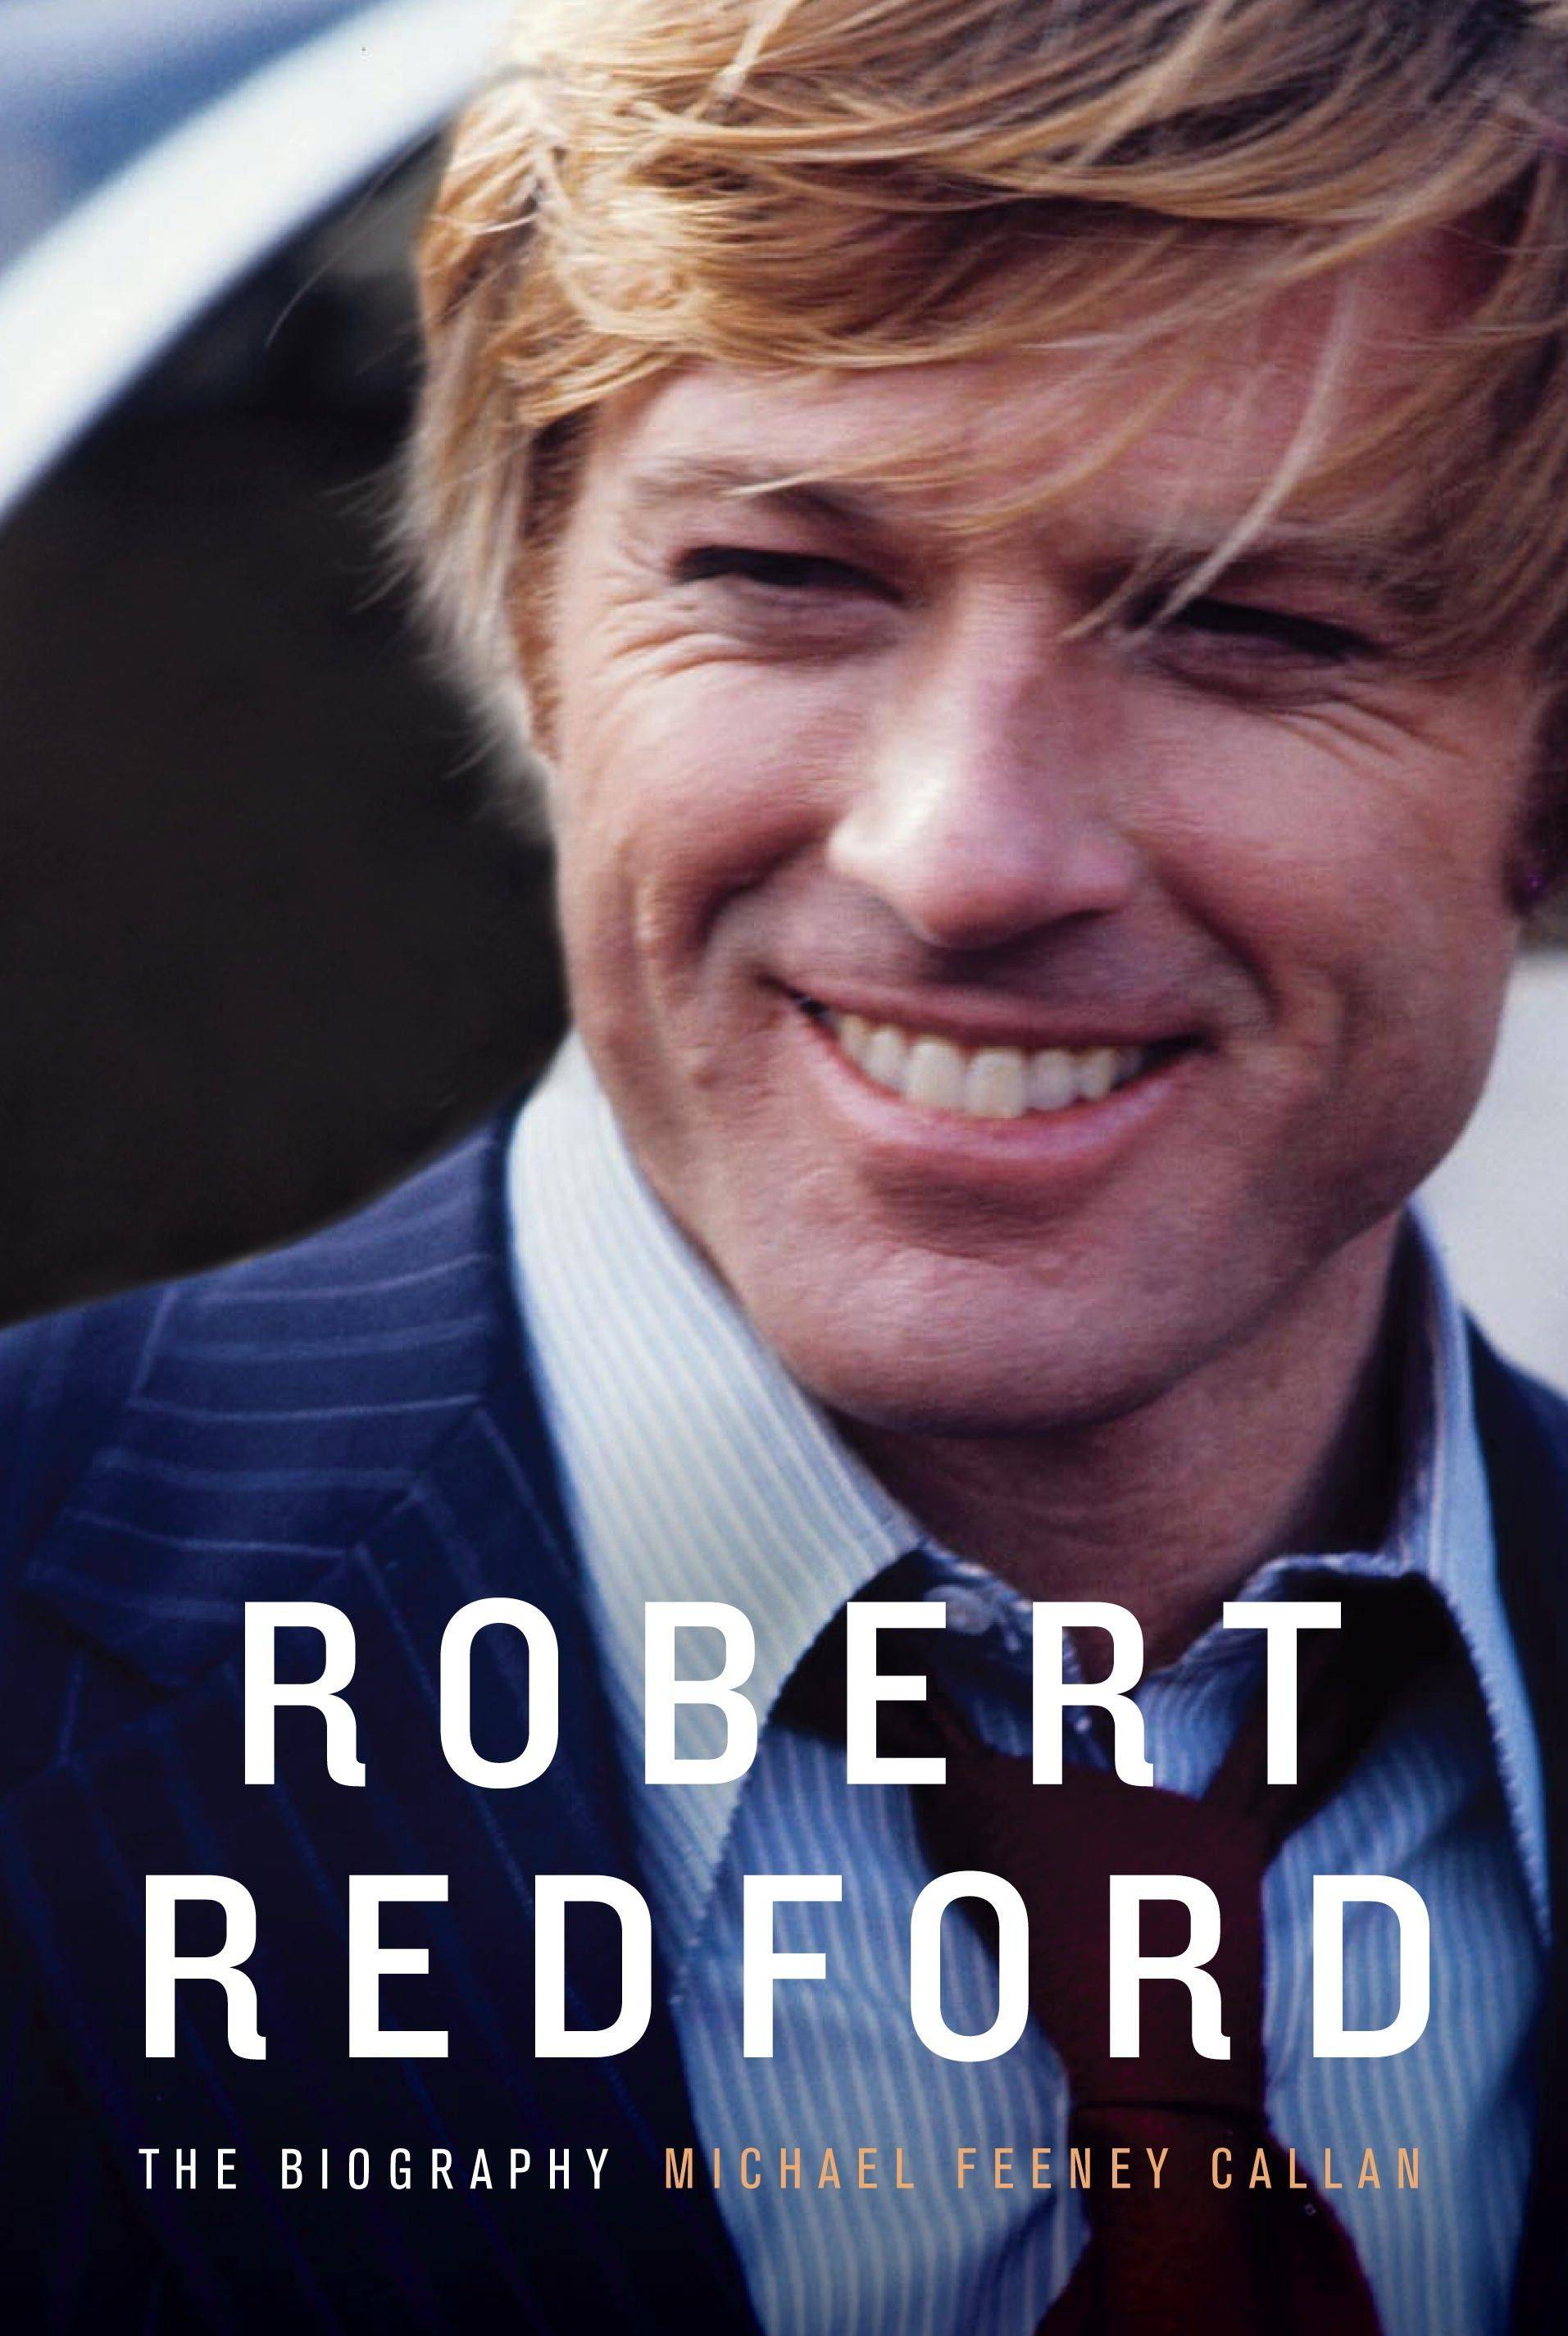 """Robert Redford: The Biography"" by Michael Feeney Callan"